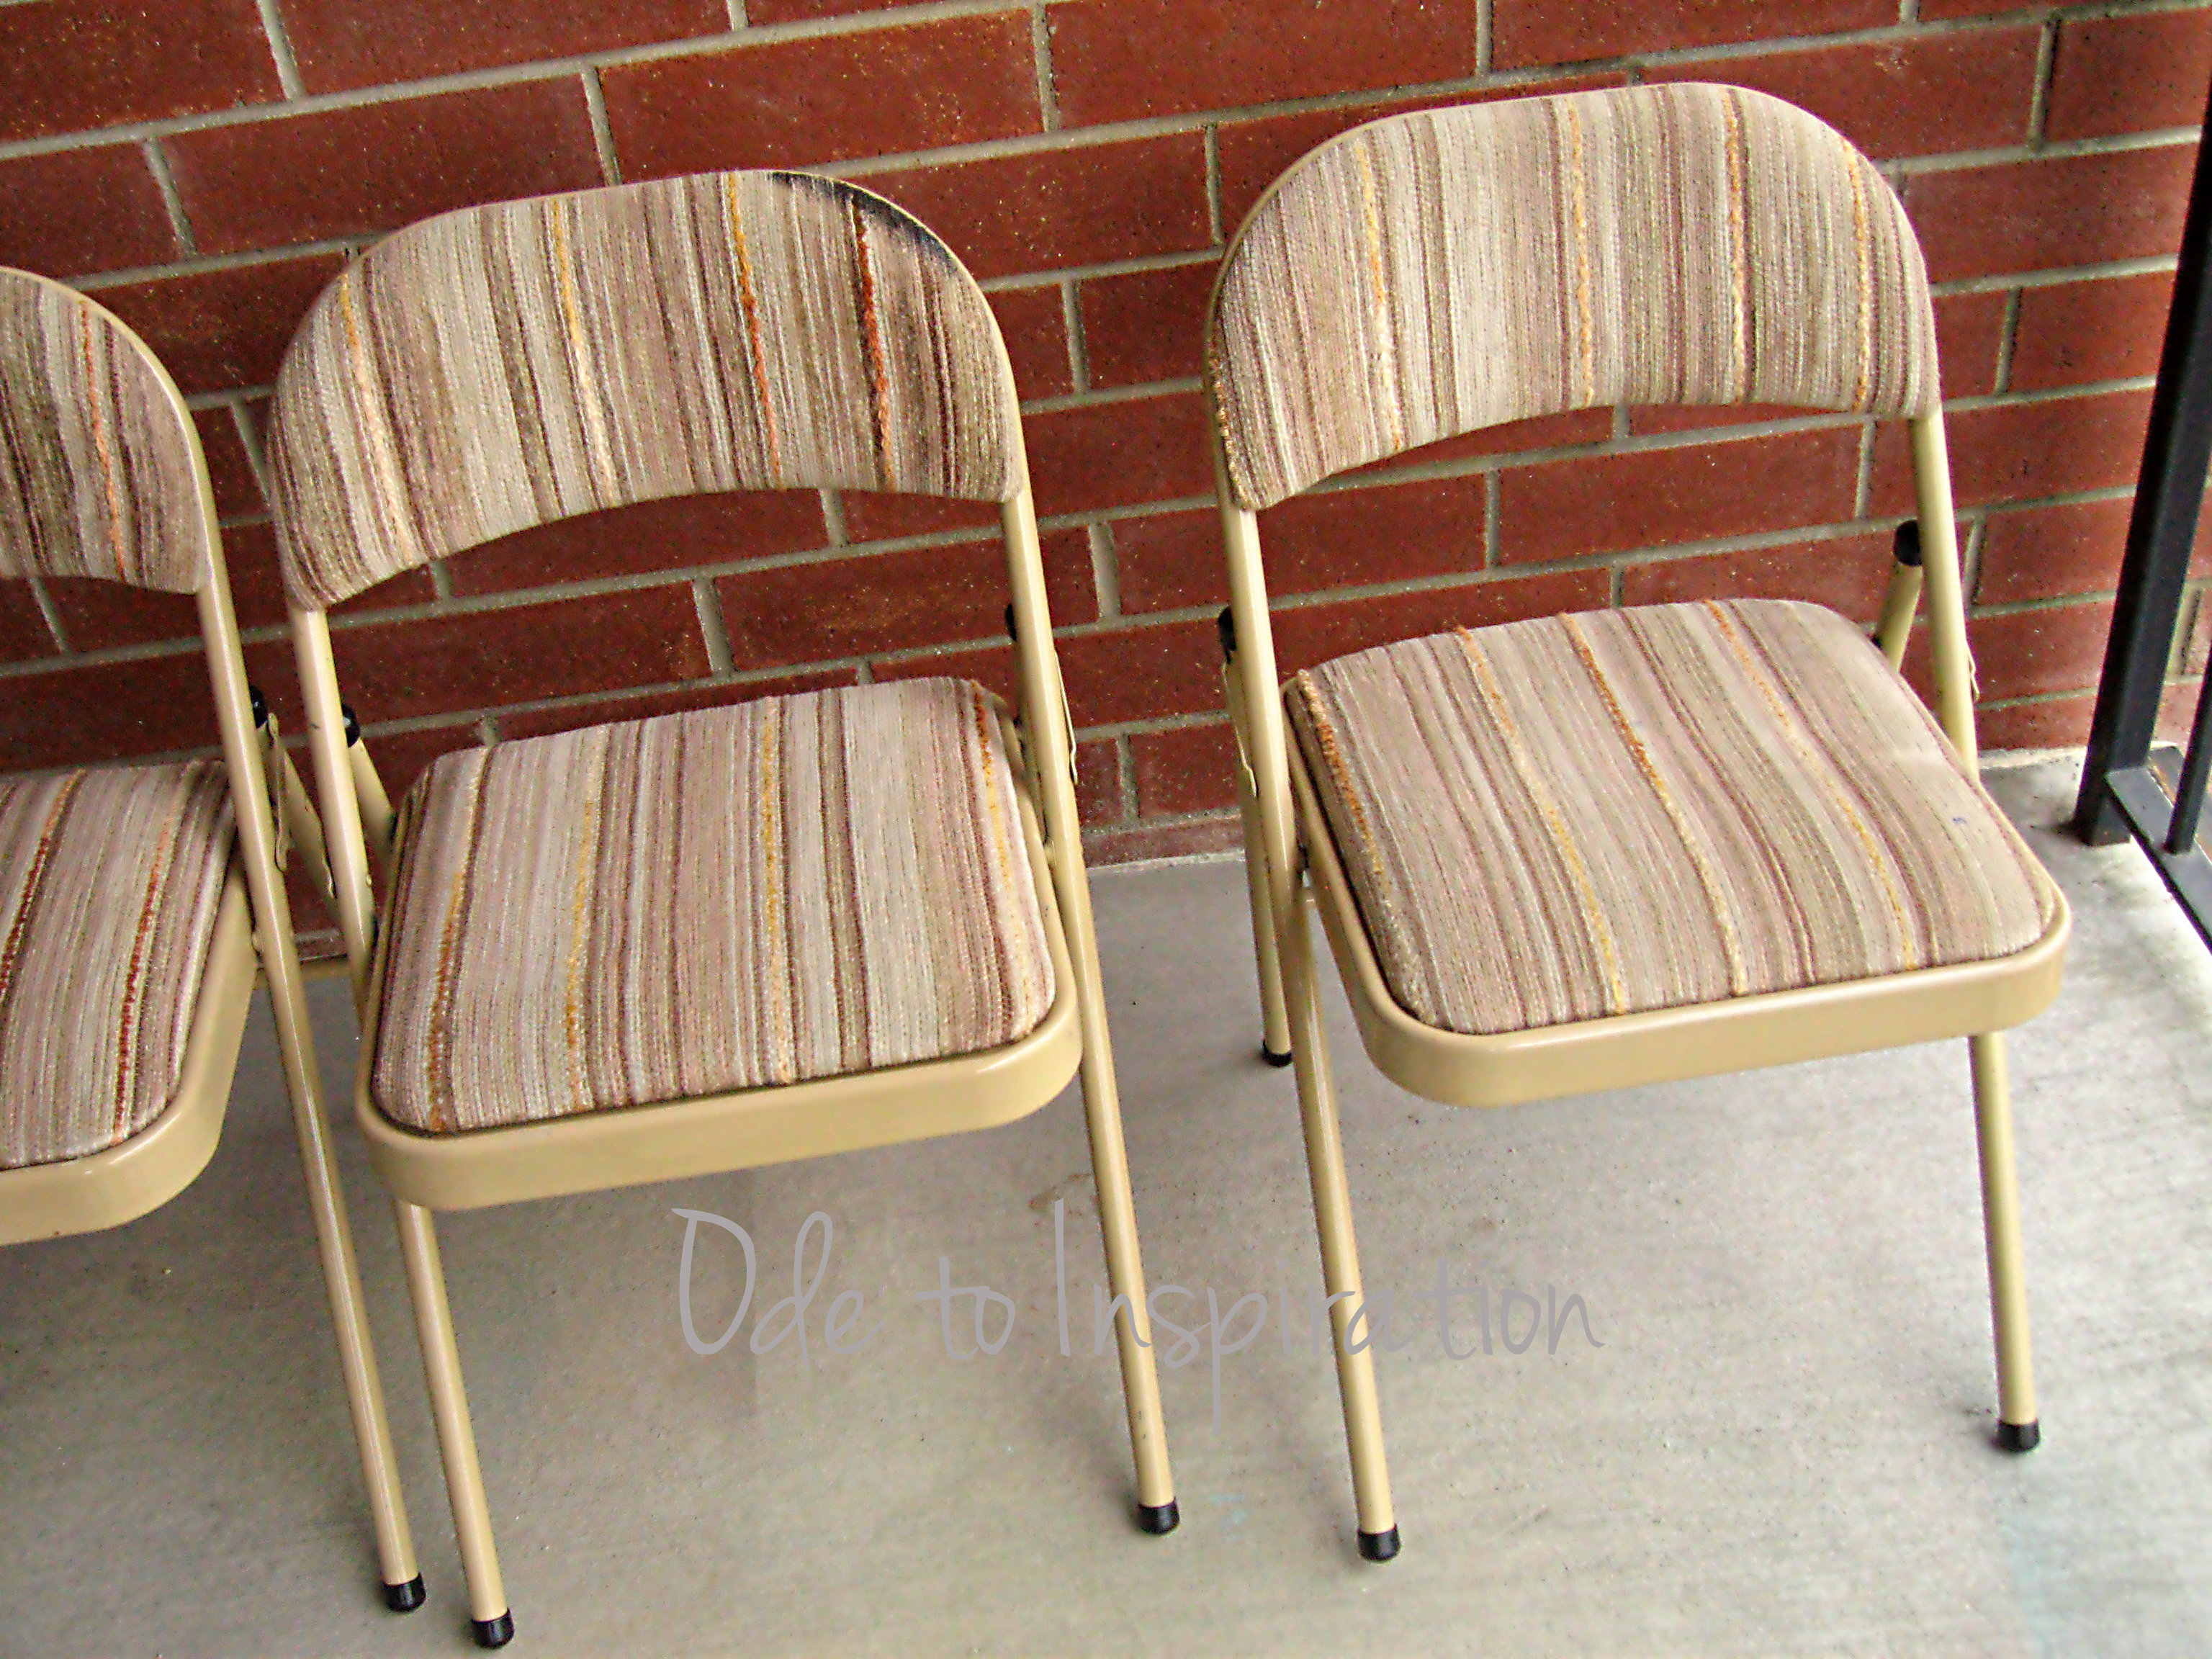 New upholstered folding chairs upholstery folding chairs mwzhbtr